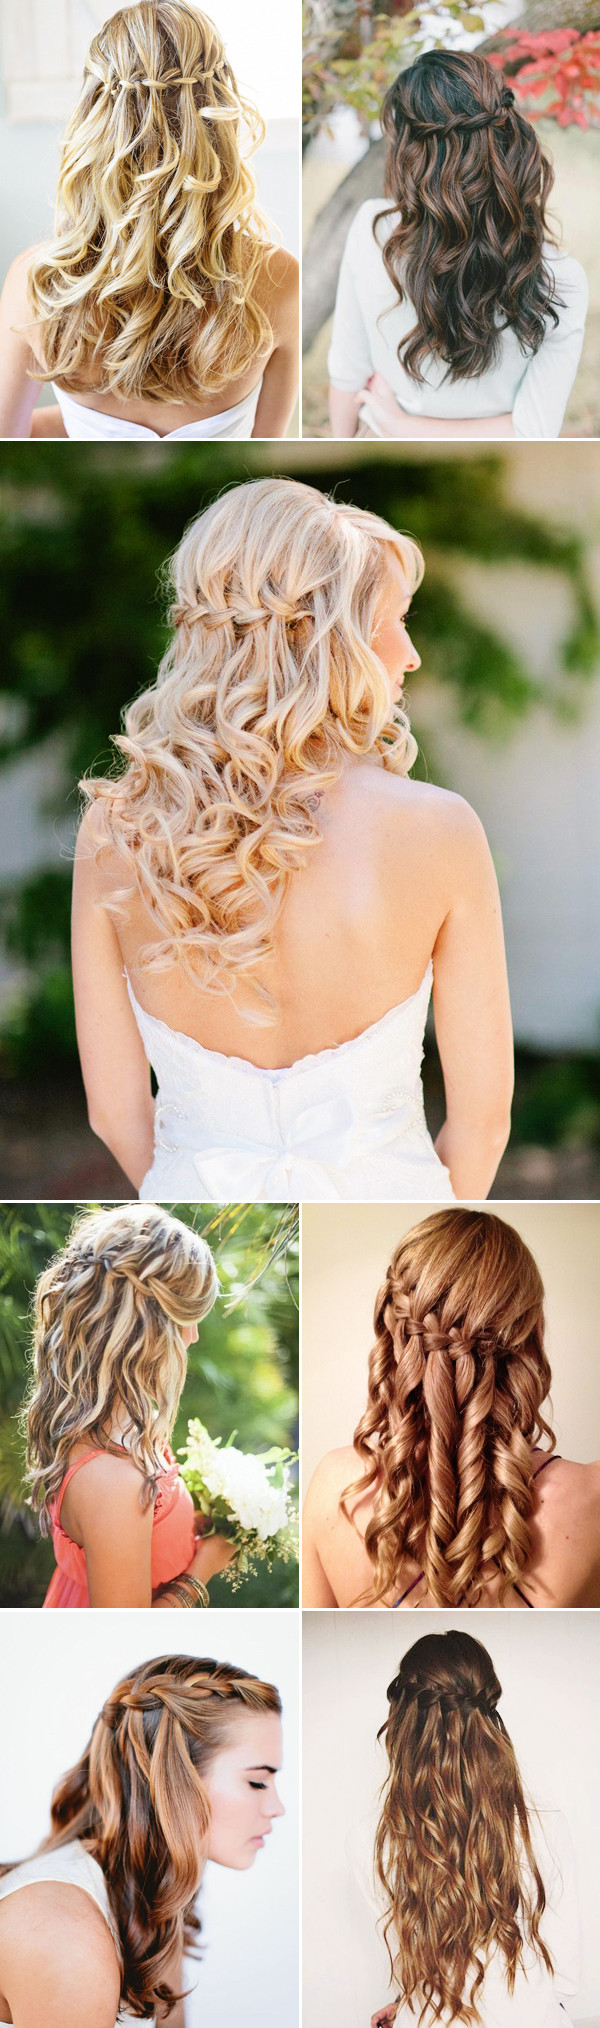 #wedding-hairstyles-waterfall Waterfall Braids